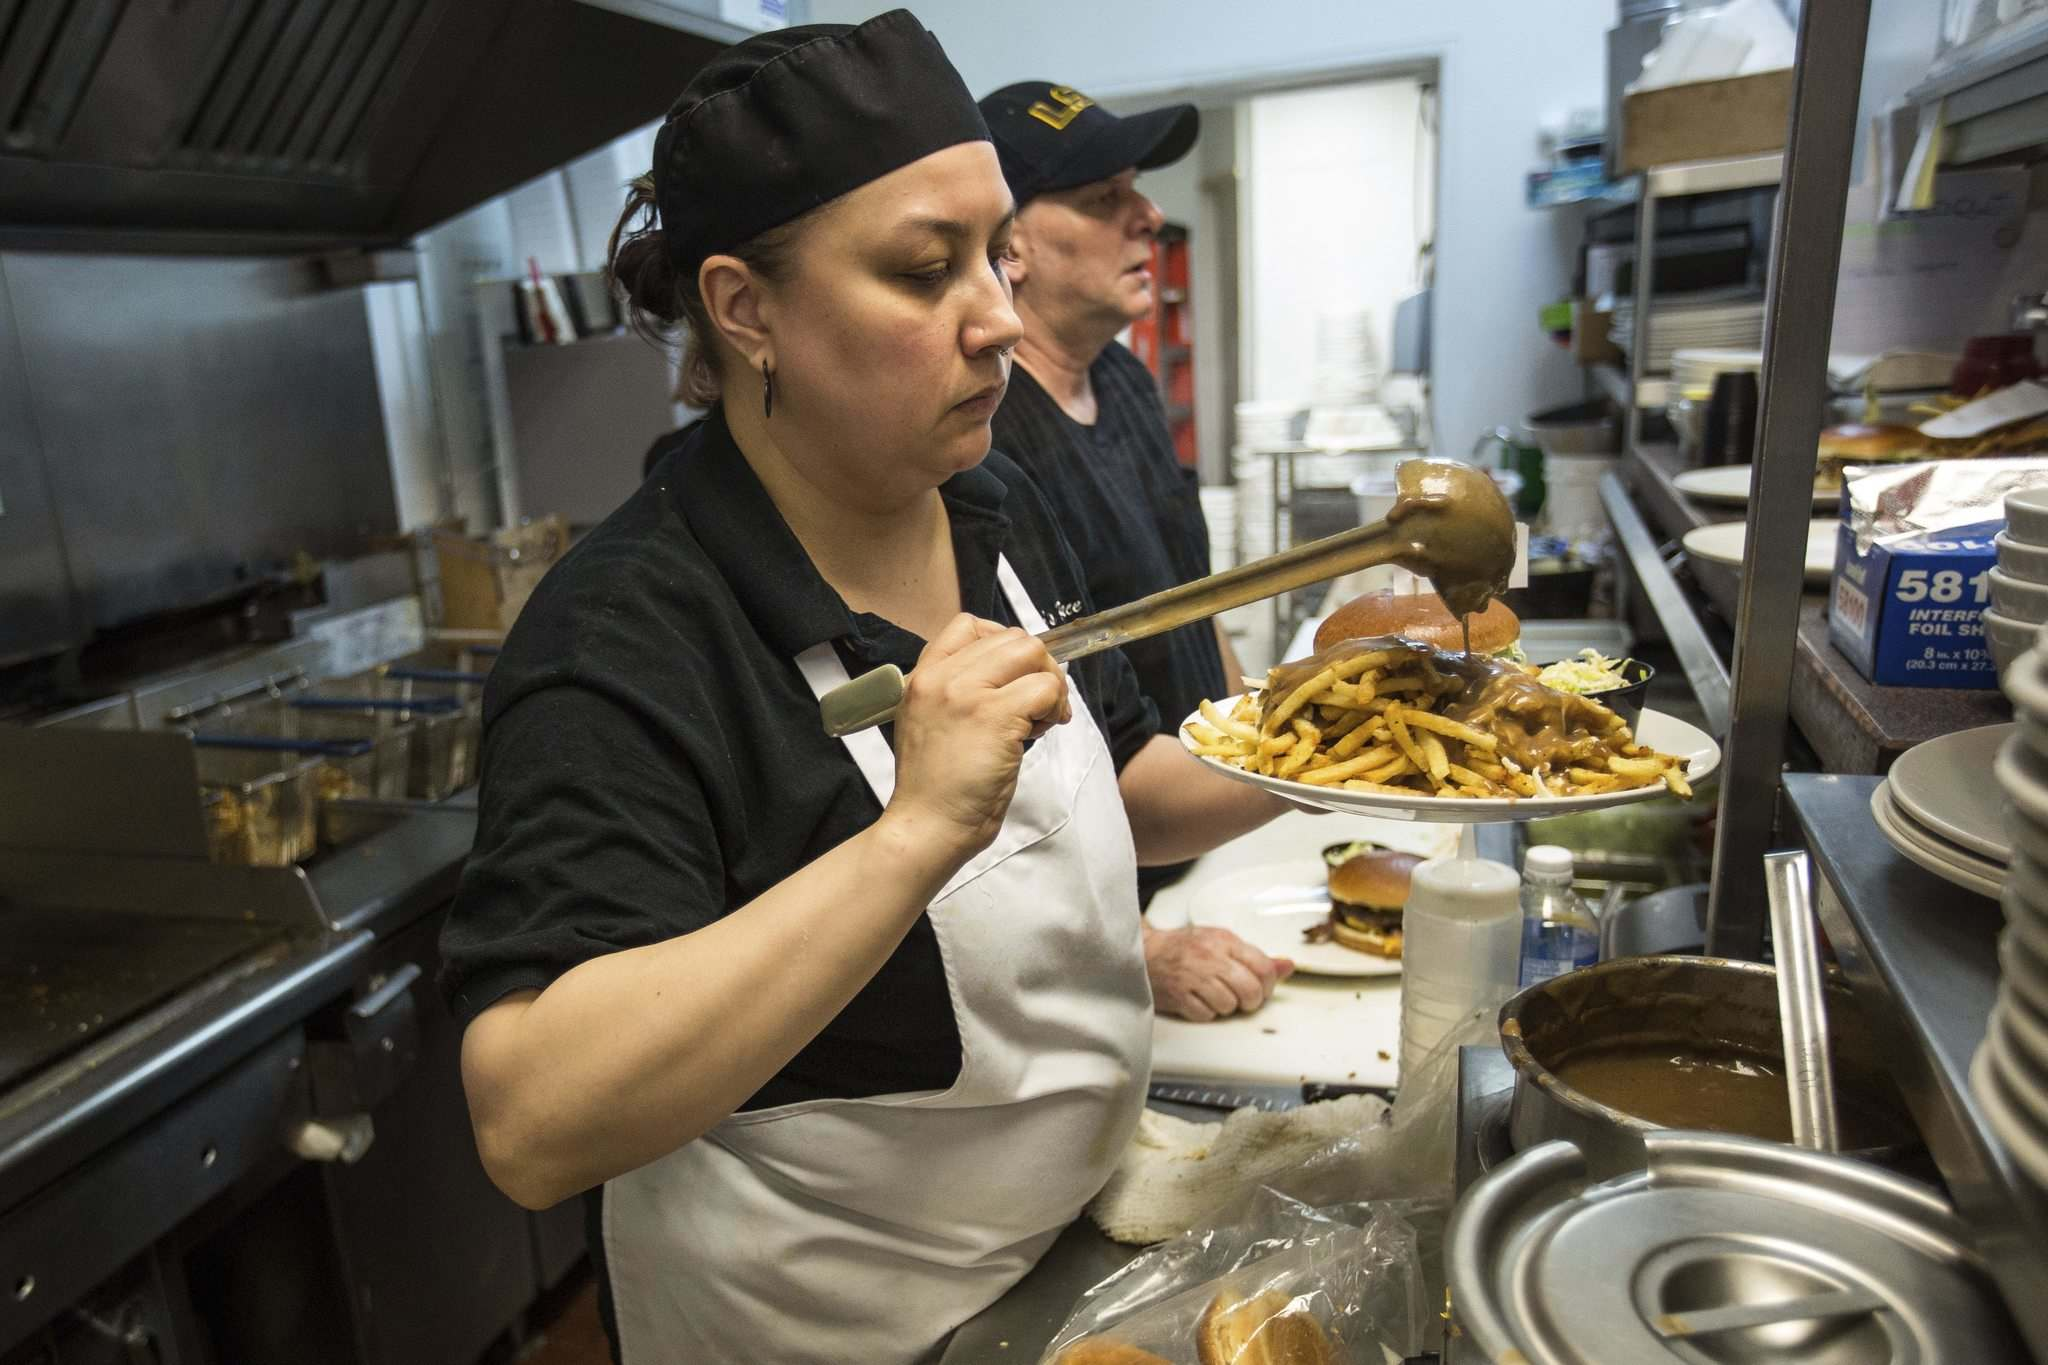 Cook Felicia puts the finishing touches on a lunch with fries by adding gravy.</p></p>